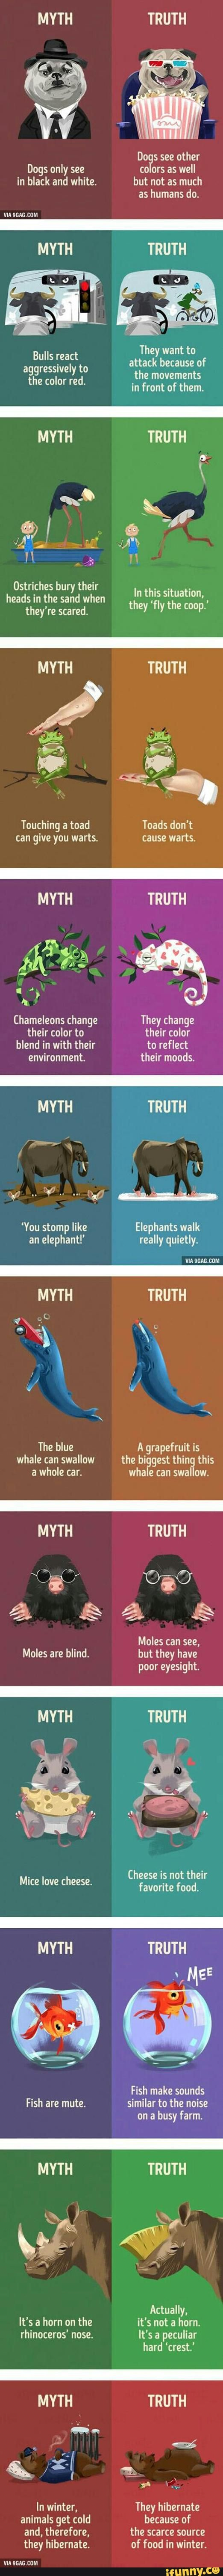 animals, myths, truths